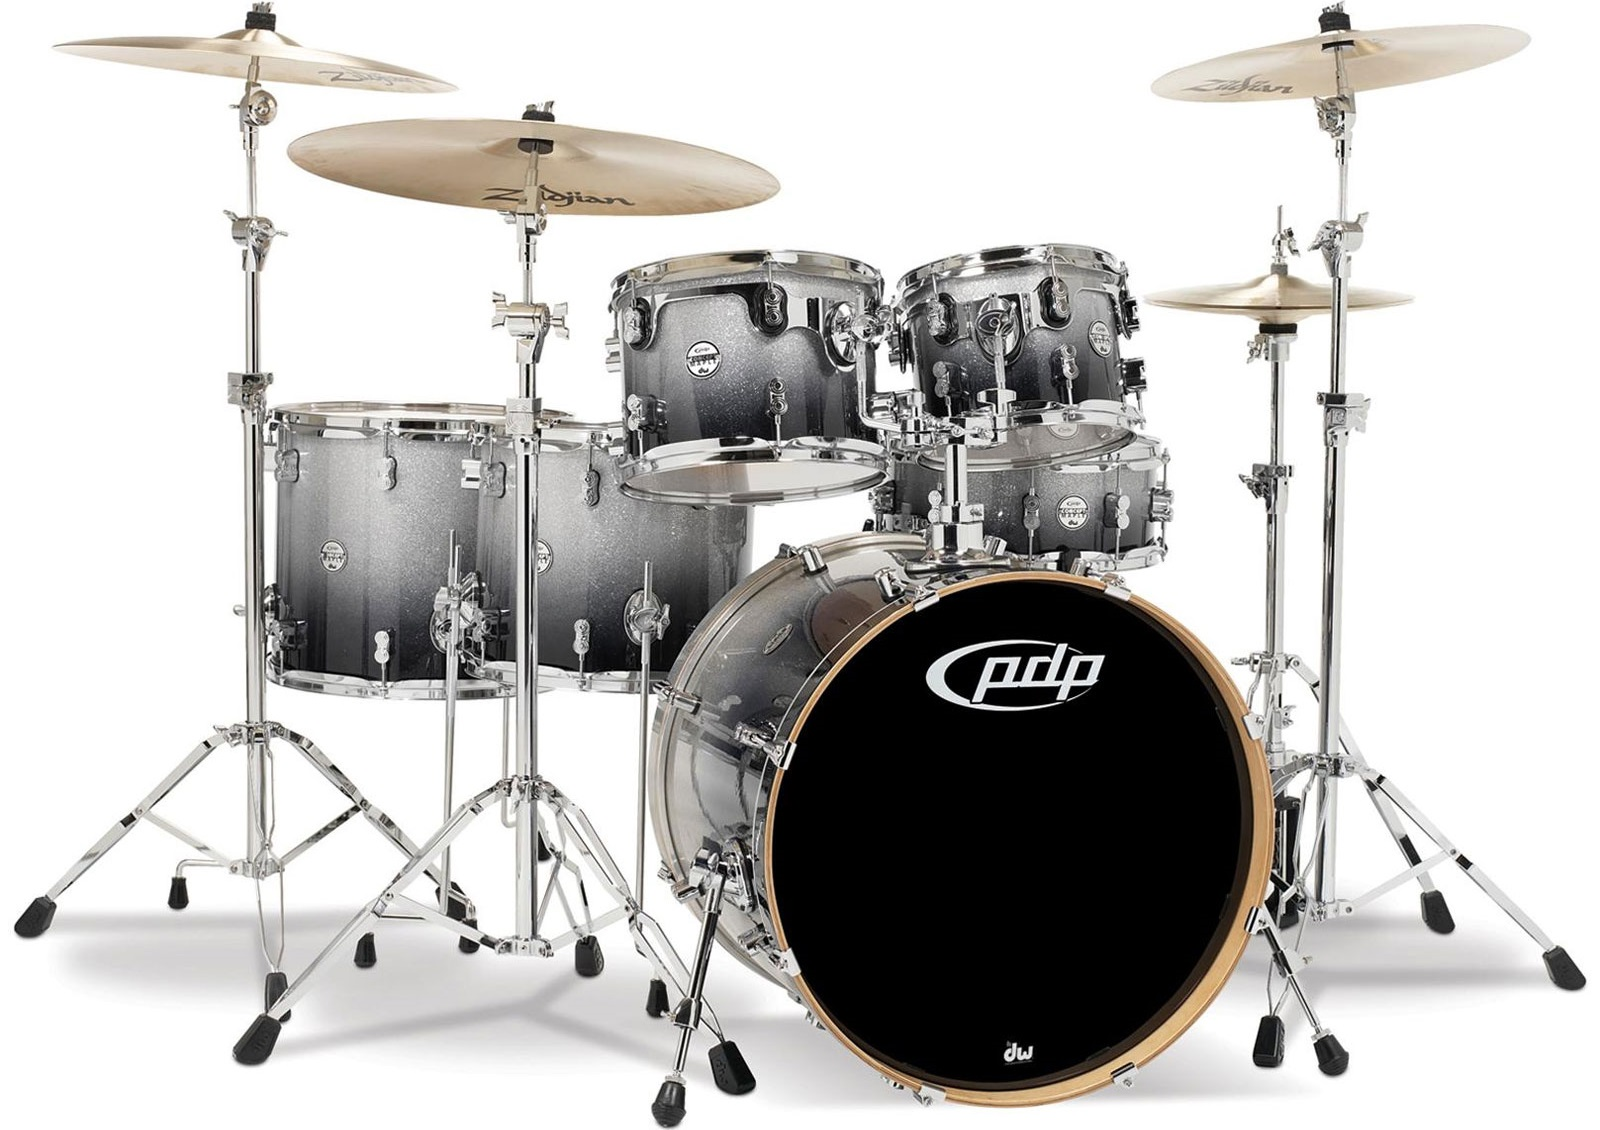 PDP Concept Maple CM6 Silver to Black Fade